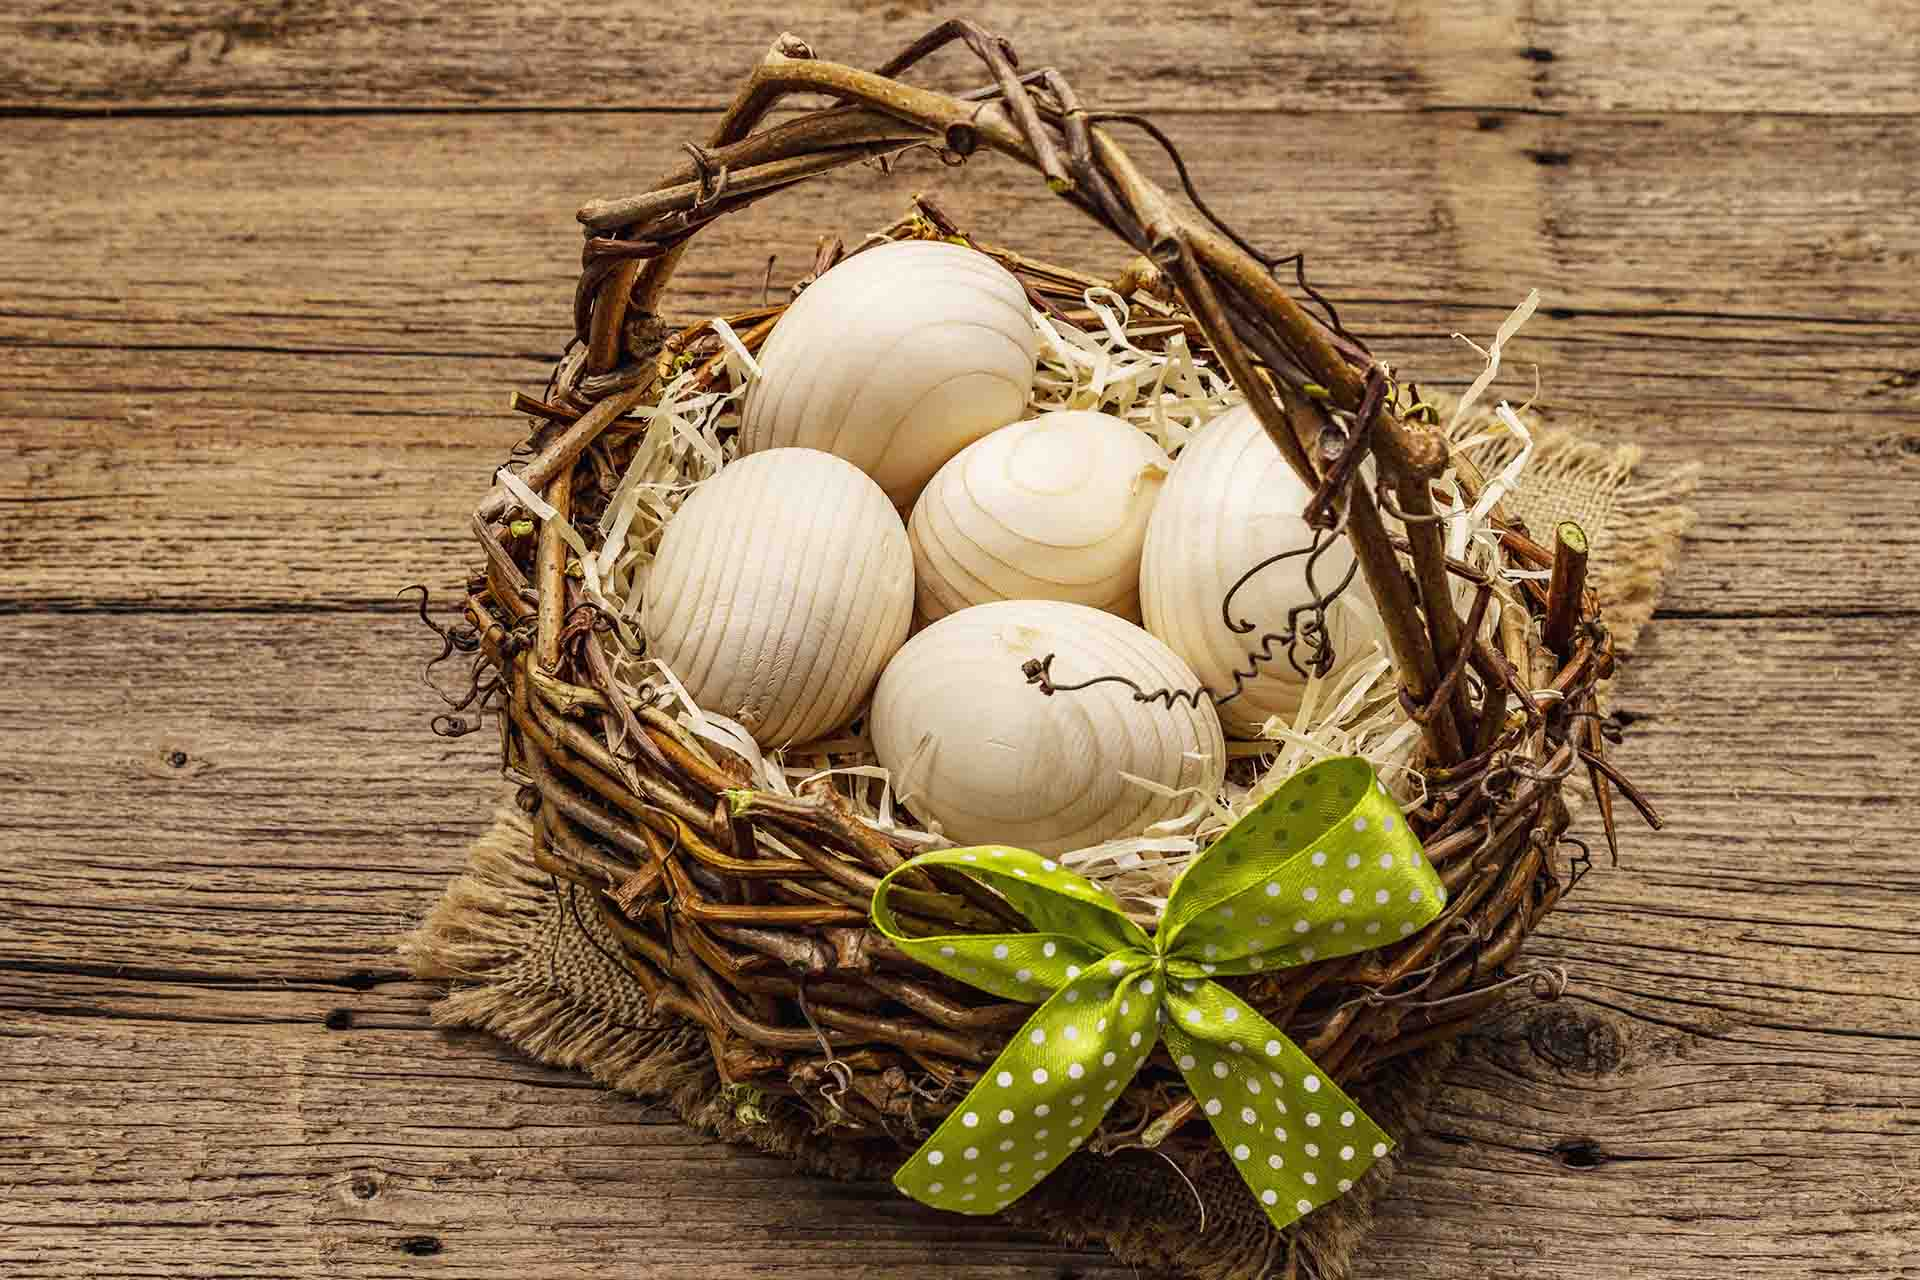 A wooden basket with a green bow filled with wooden eggs sitting on a wooden table.